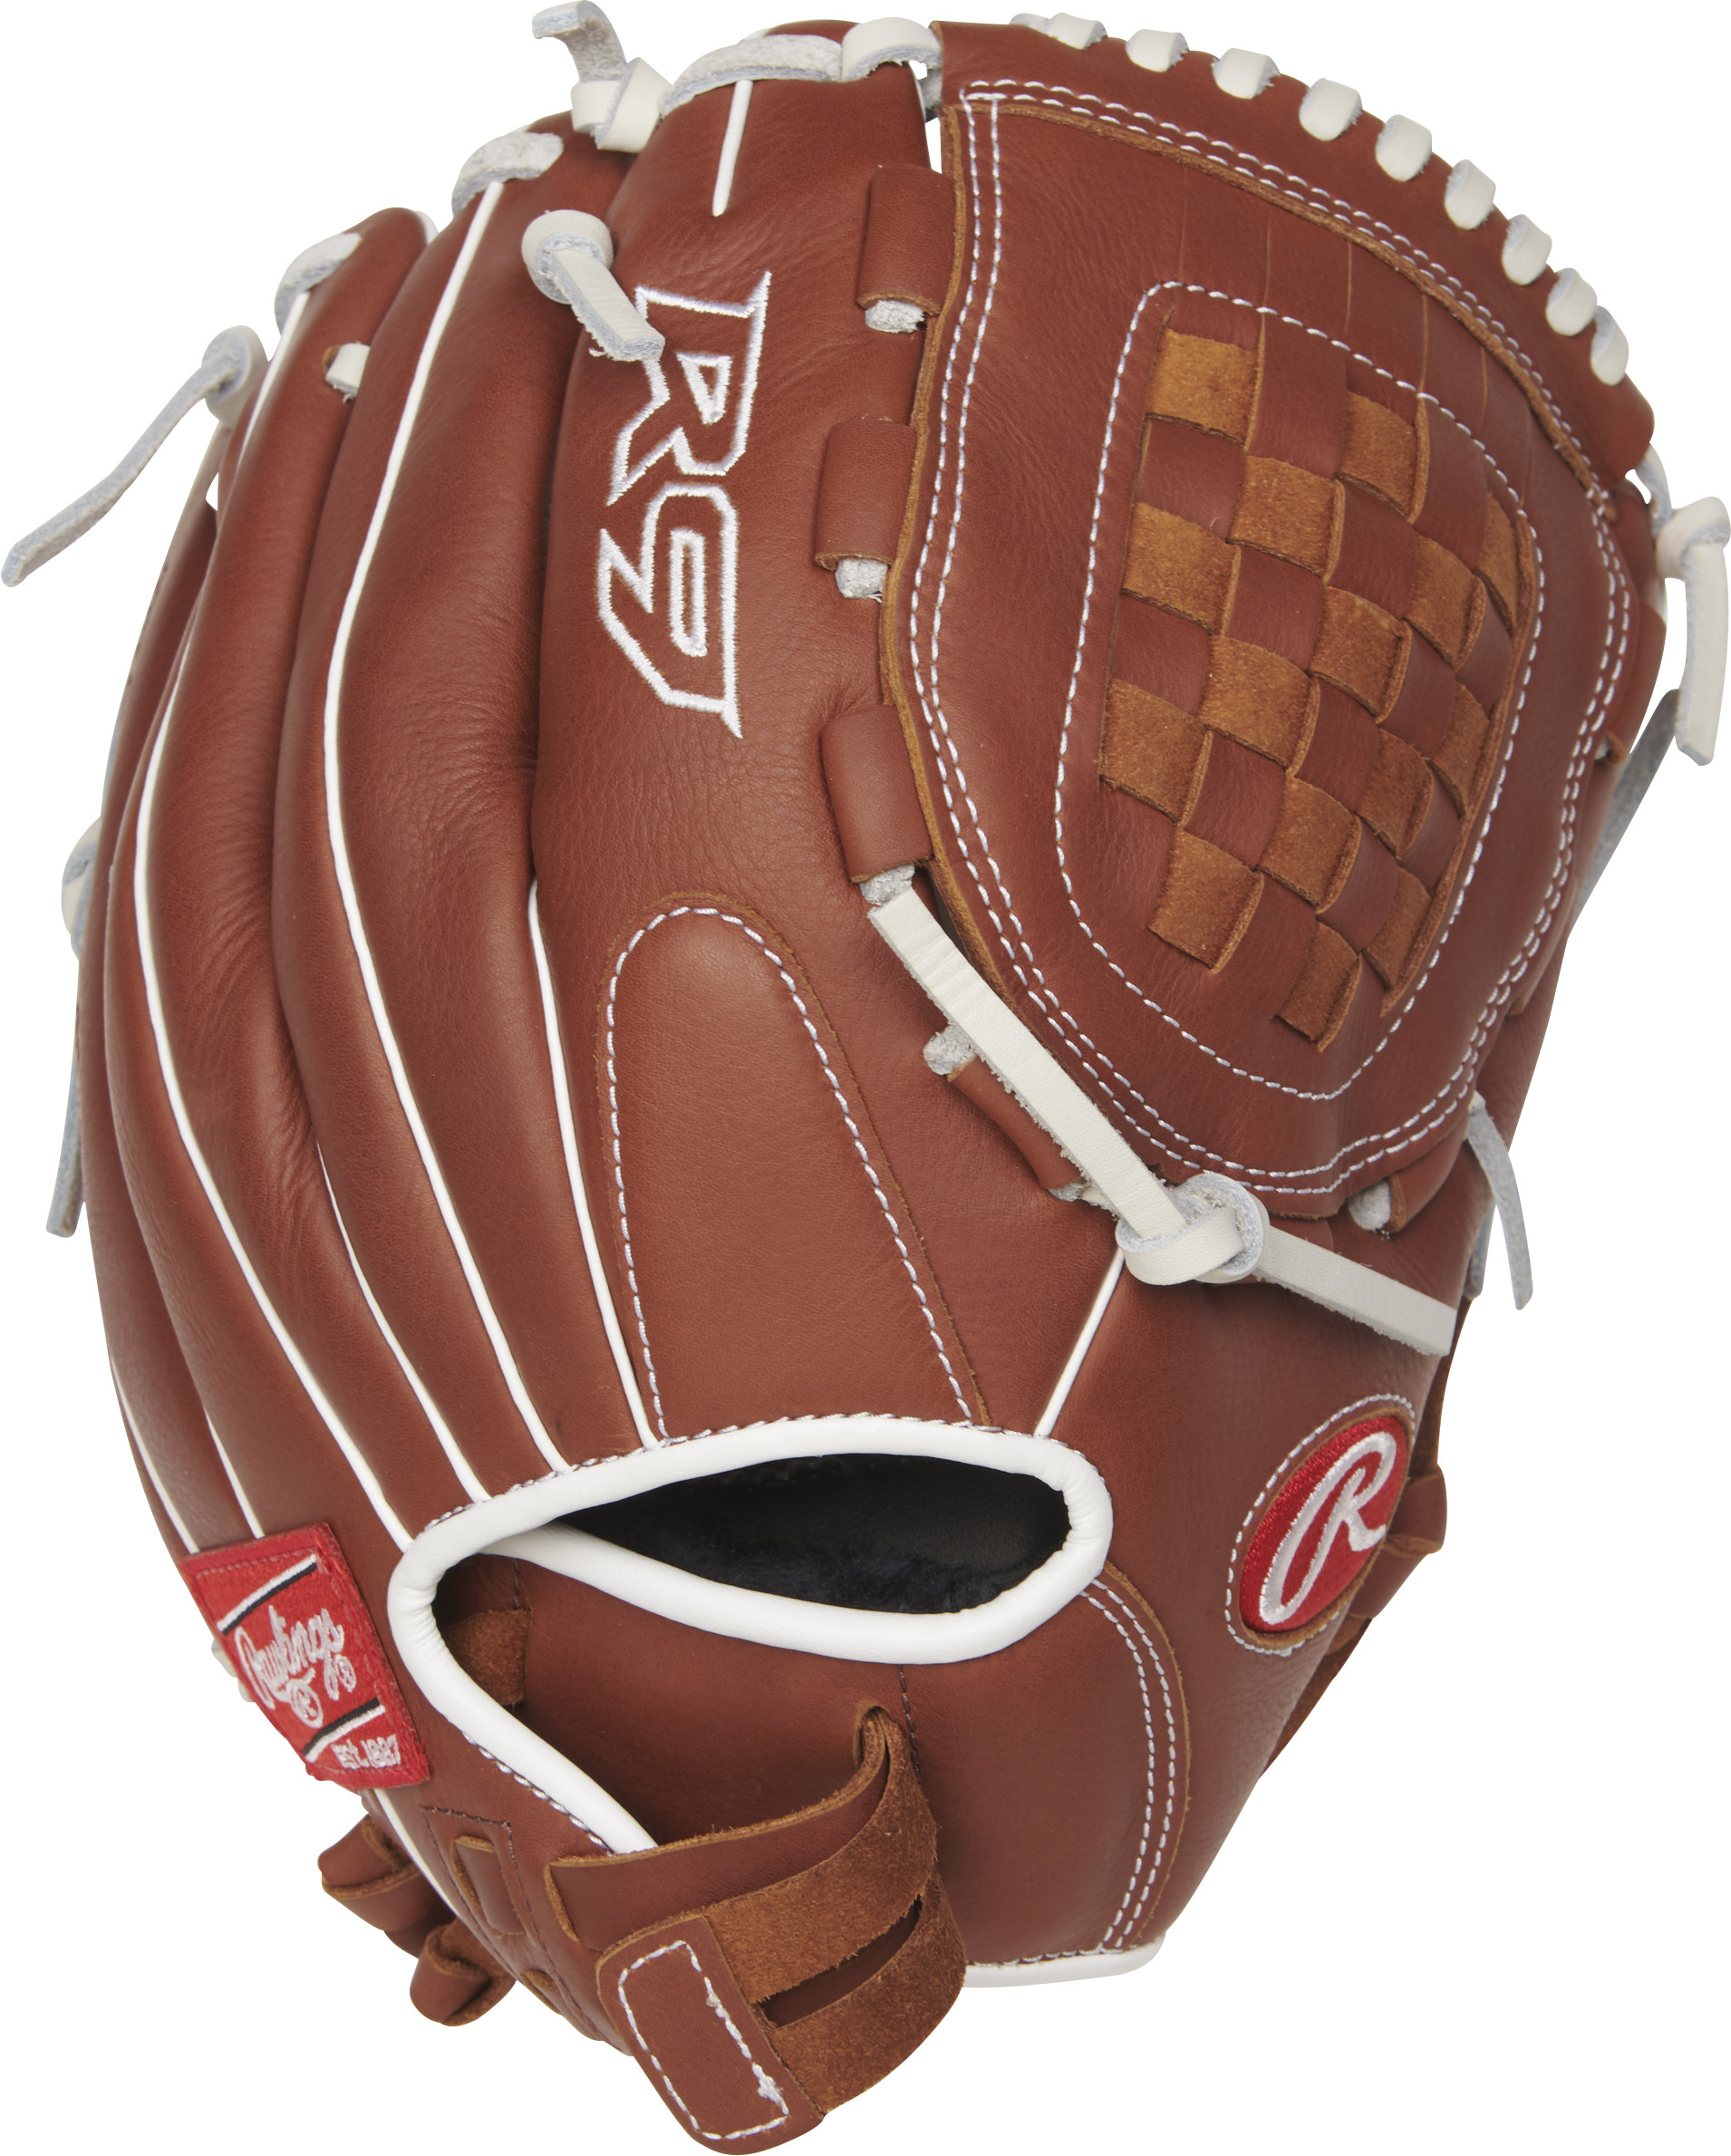 http://www.bestbatdeals.com/images/gloves/rawlings/R9SB120-3DB-2.jpg